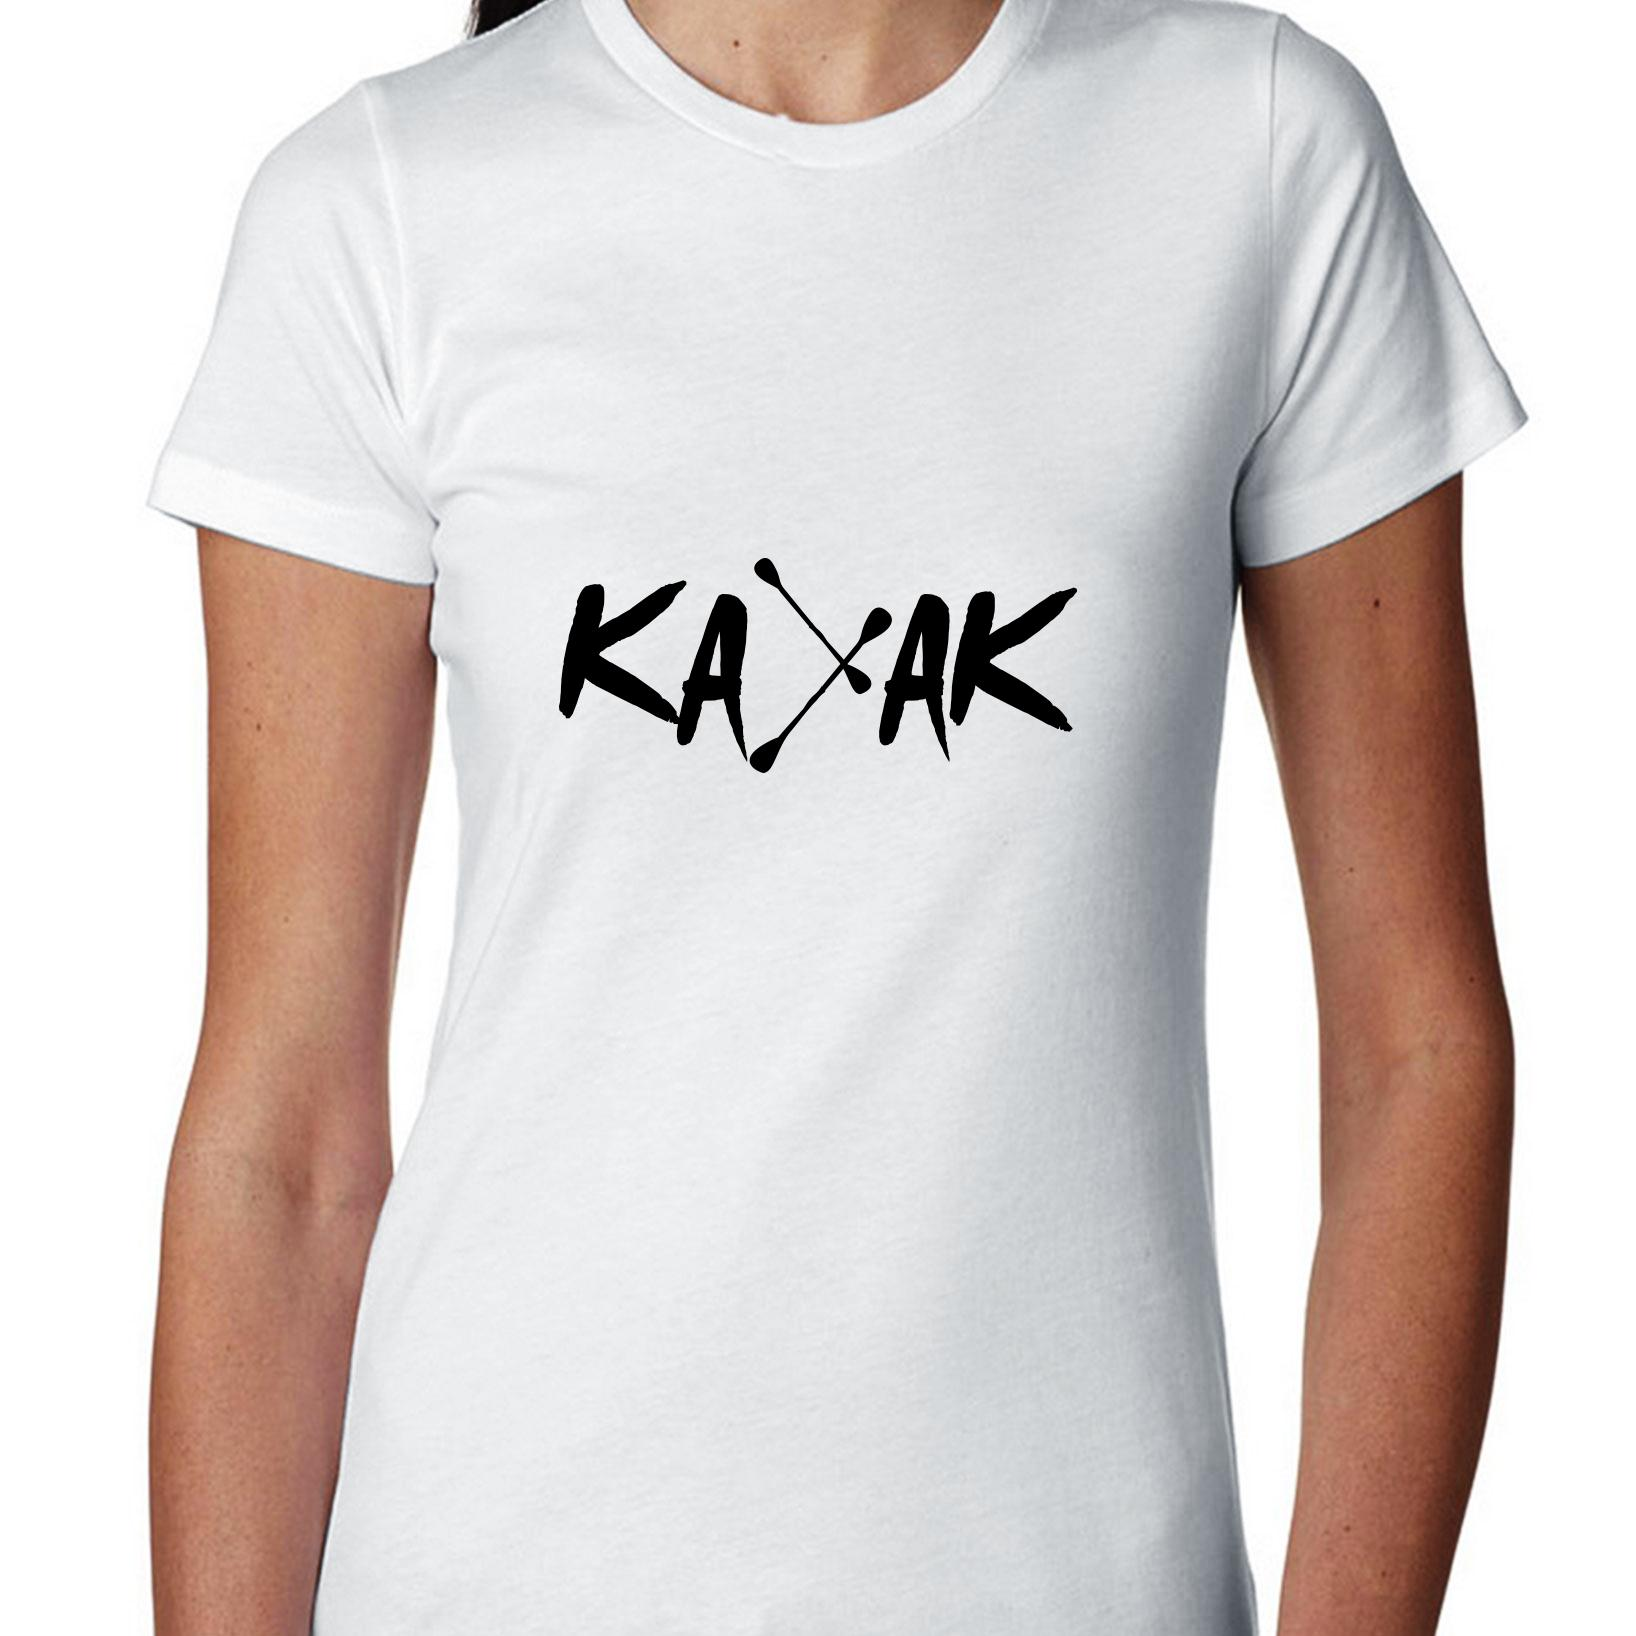 Kayak With Paddle Font Trendy Kayaker Women's Cotton T-Shirt